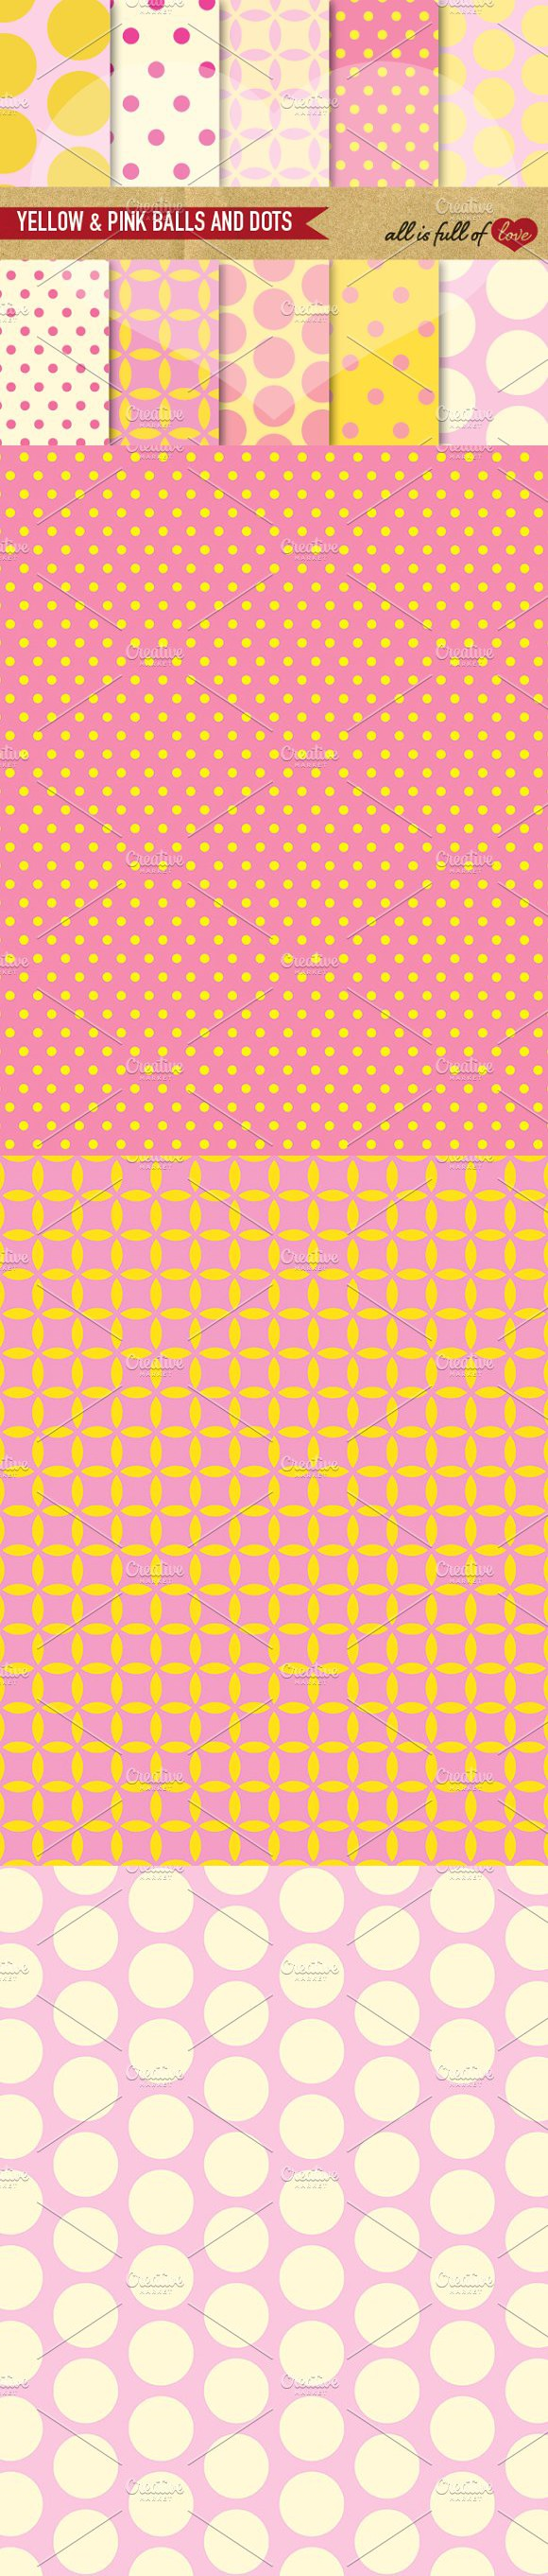 Yellow & Pink Balls Dots Papers. Wedding Card Templates